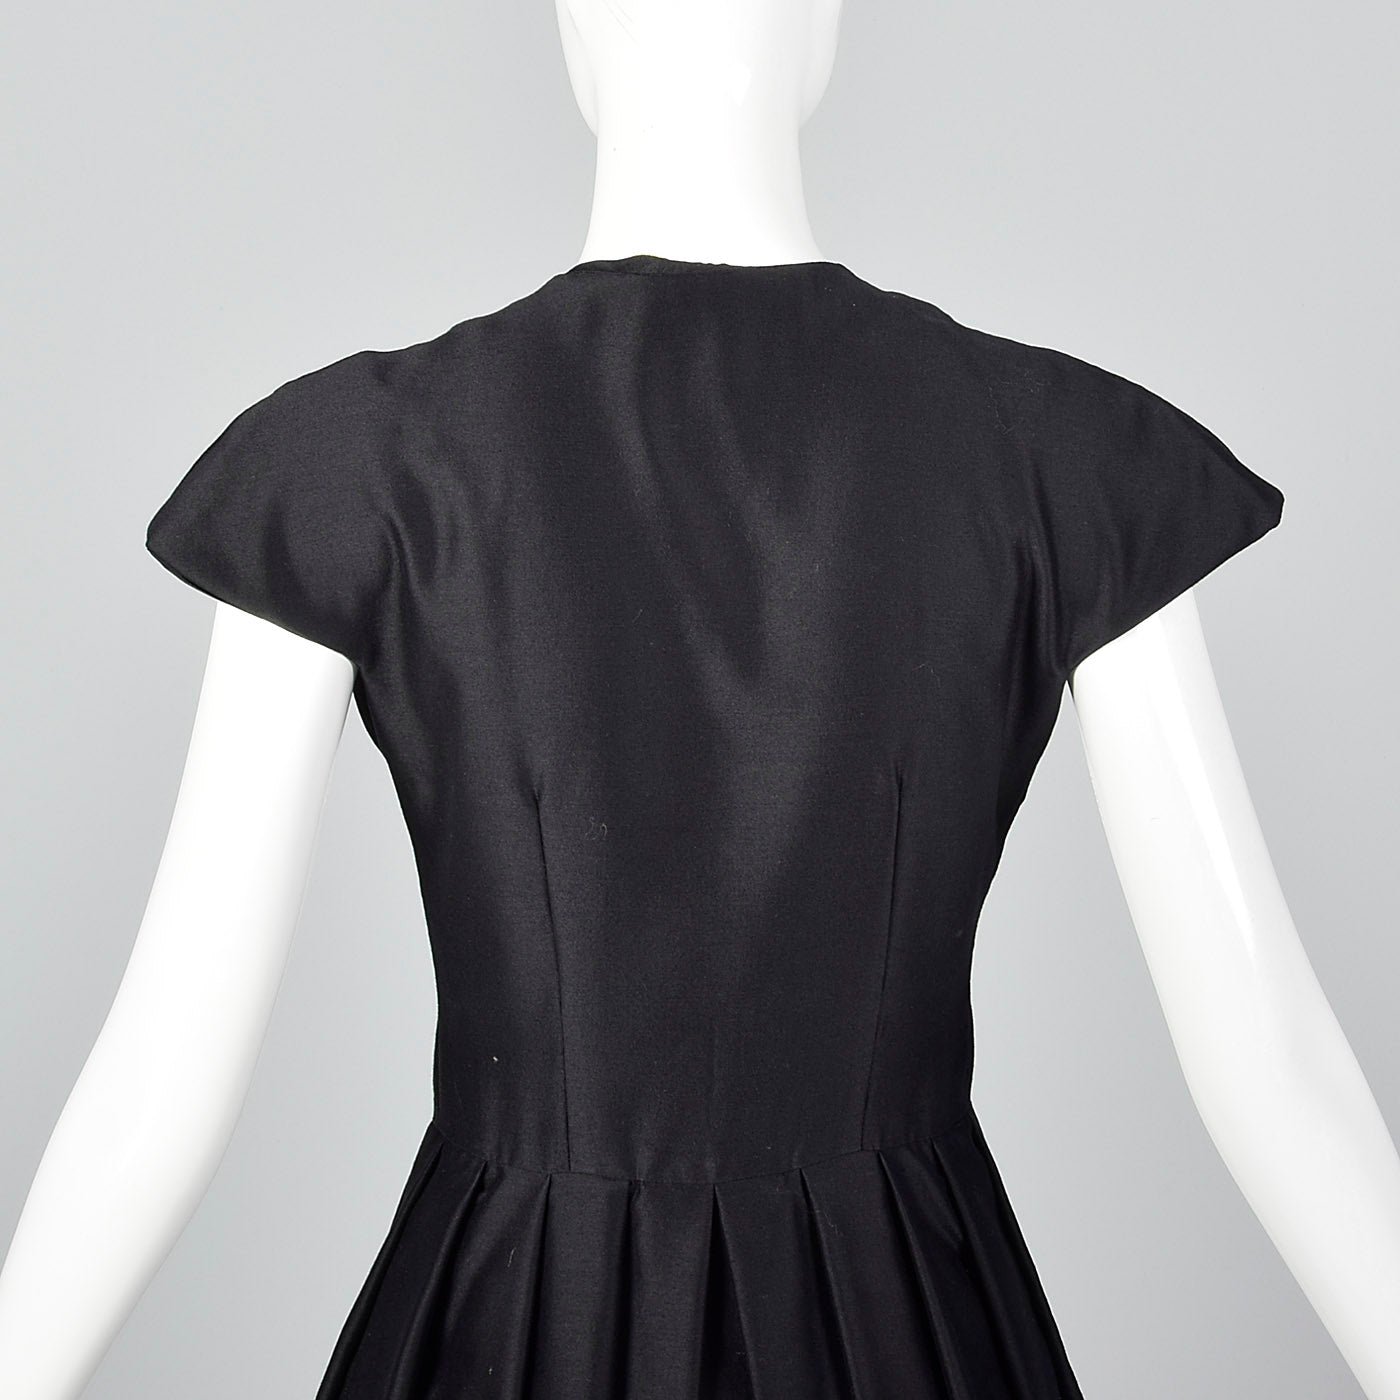 1960s Suzy Perette Black Dress with Pleated Skirt